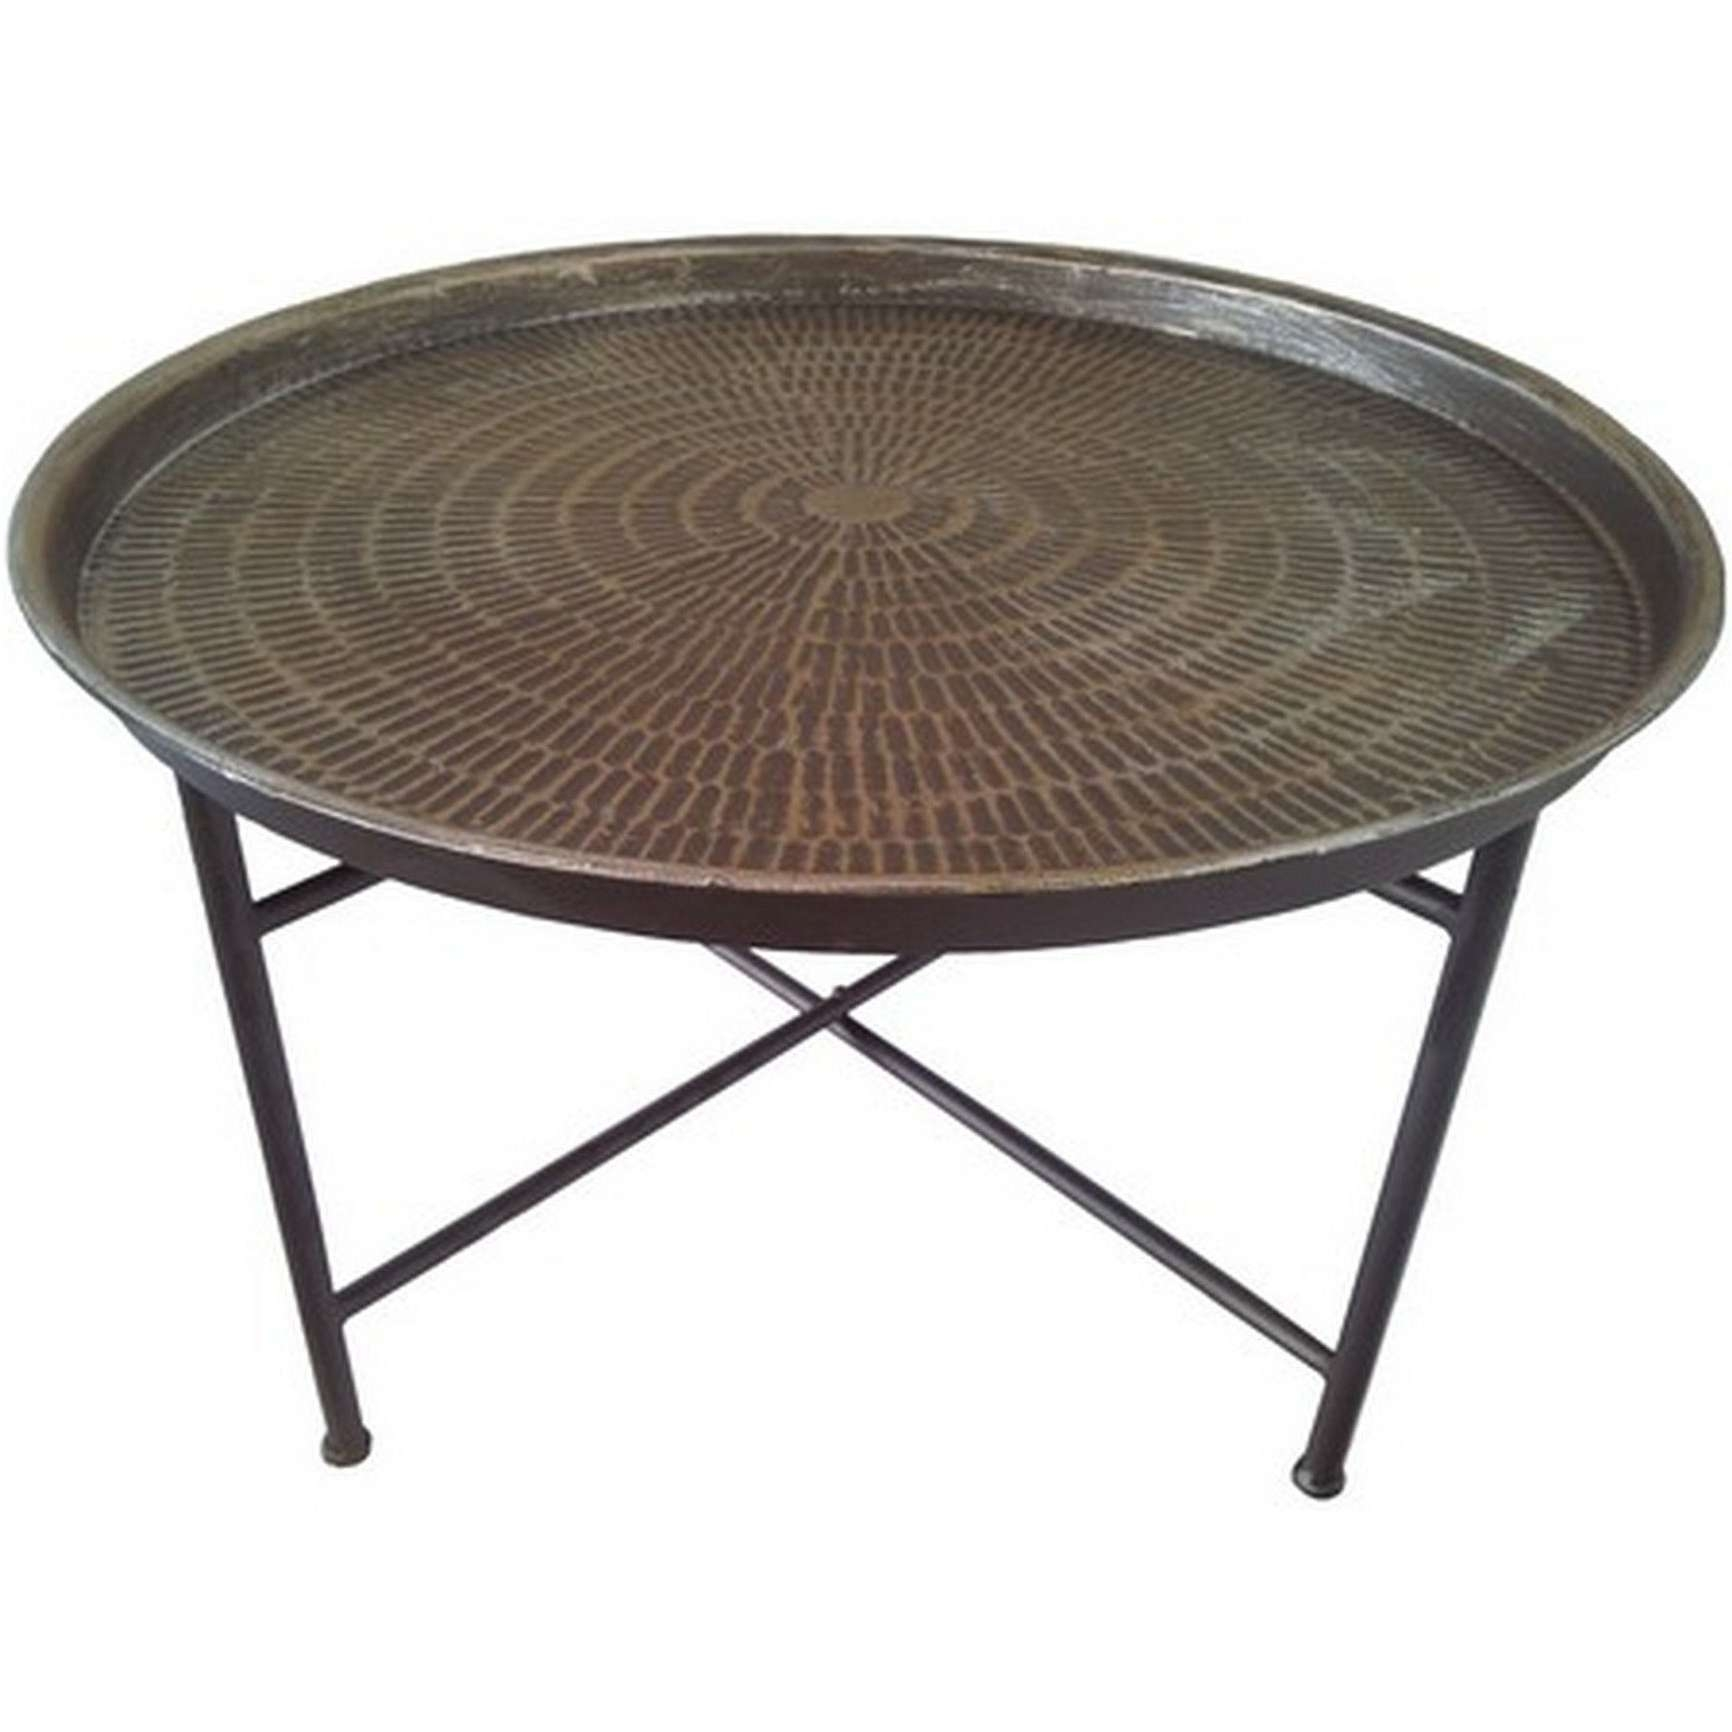 2018 Round Steel Coffee Tables Inside Uncategorized : Metal Round Coffee Table For Finest Coffee Table (View 1 of 20)